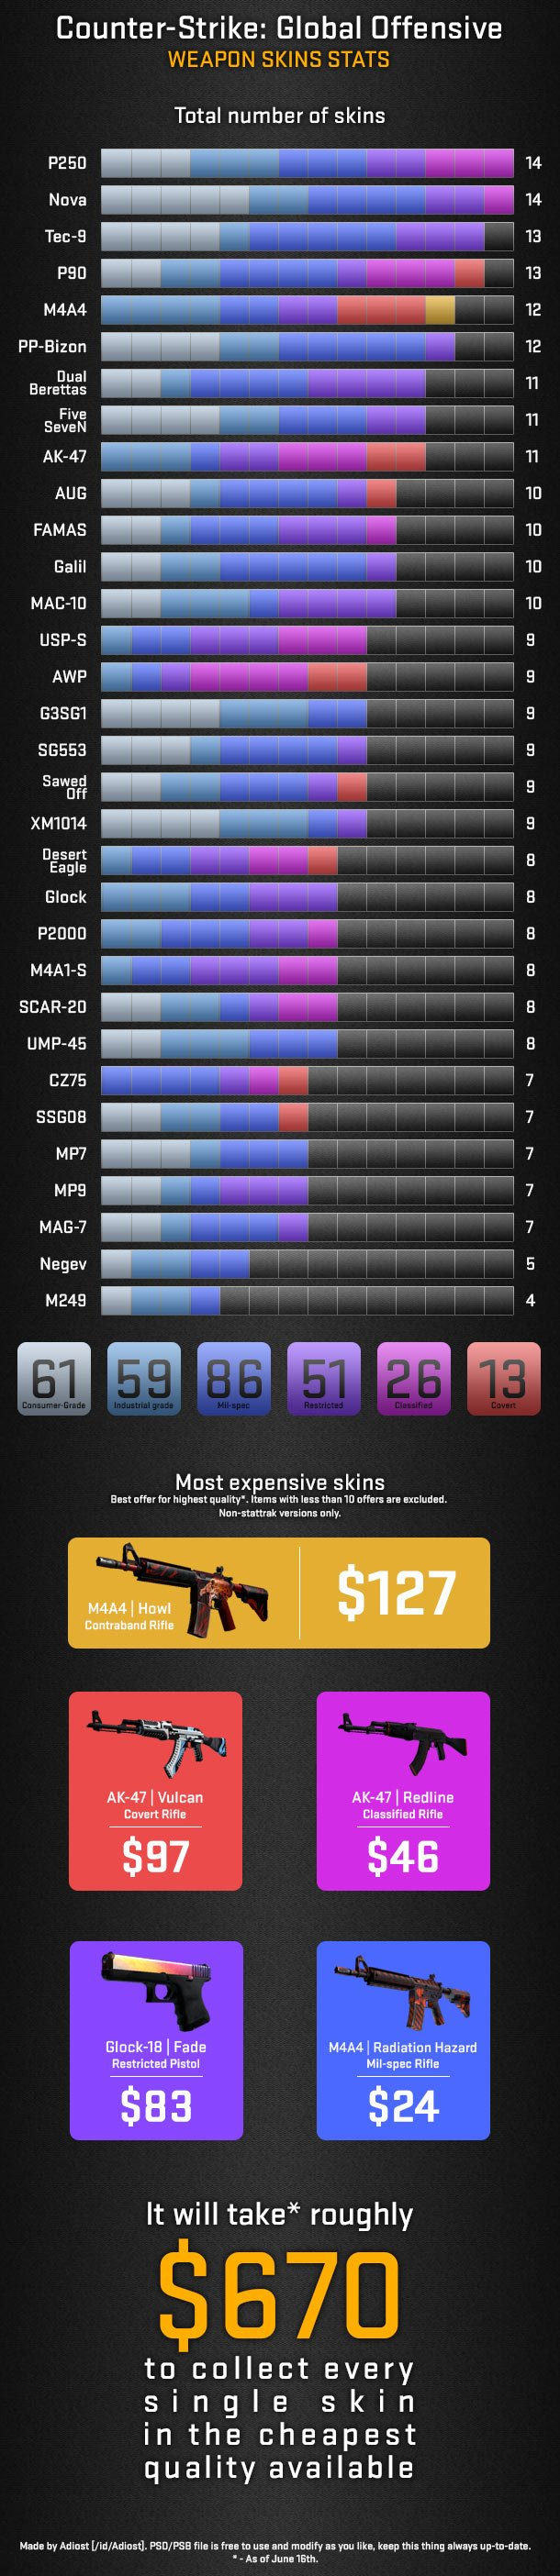 CS:GO infographic on weapon skins stats